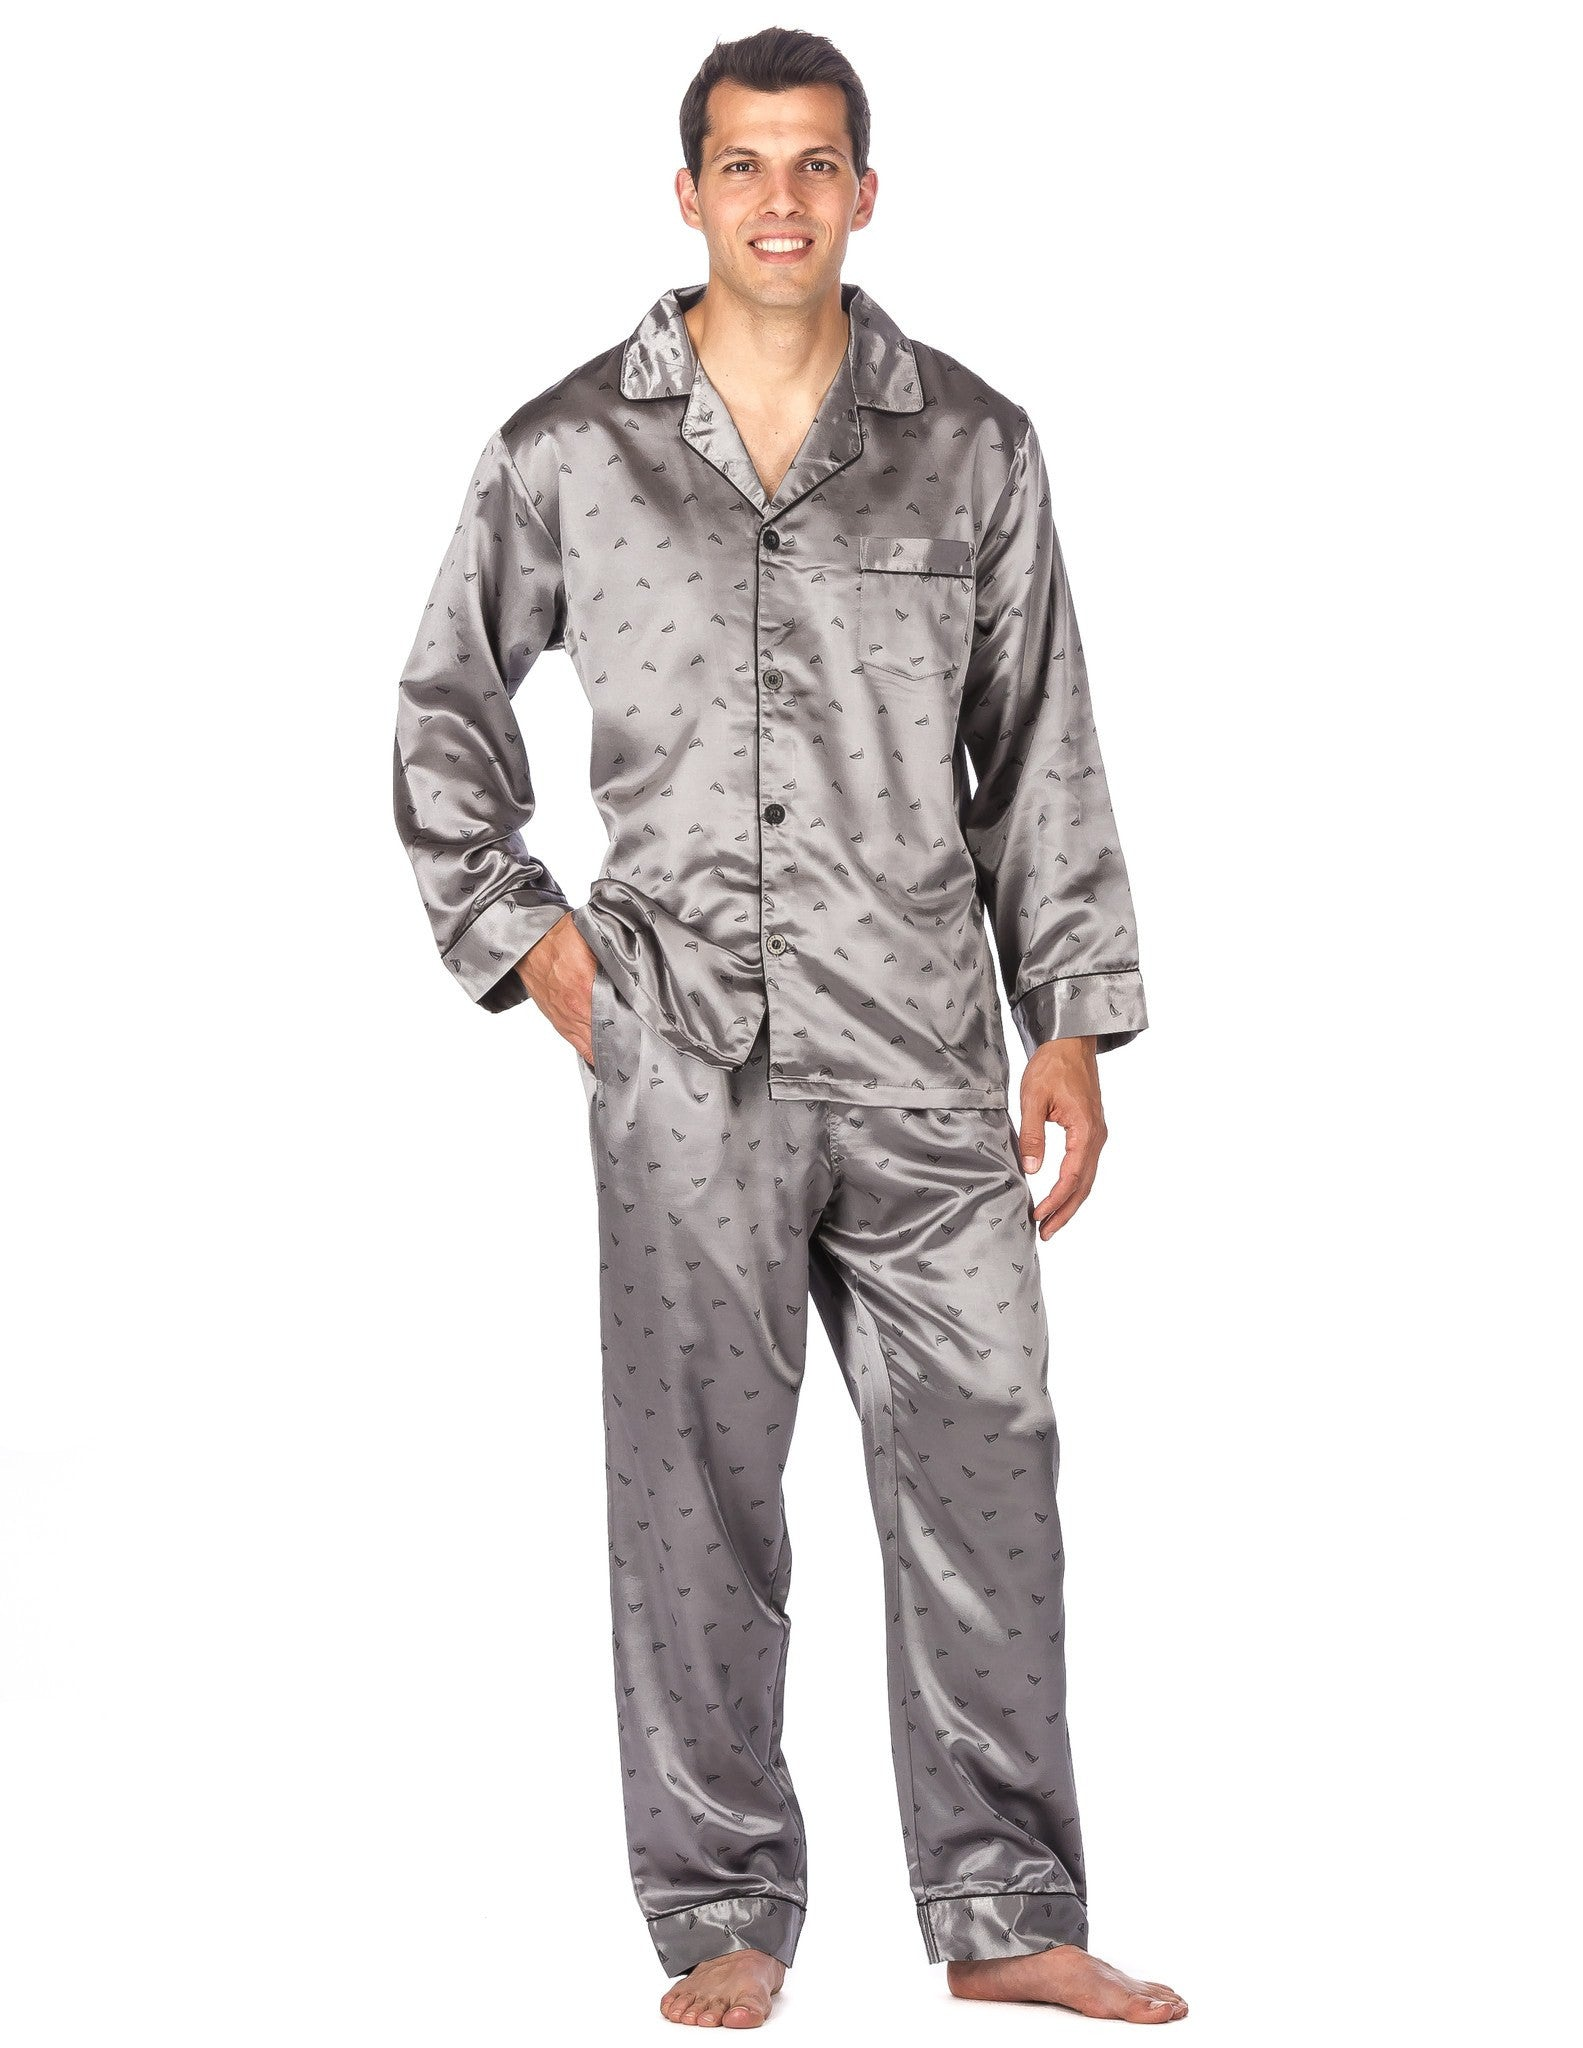 Men's Premium Satin Pajama Sleepwear Set